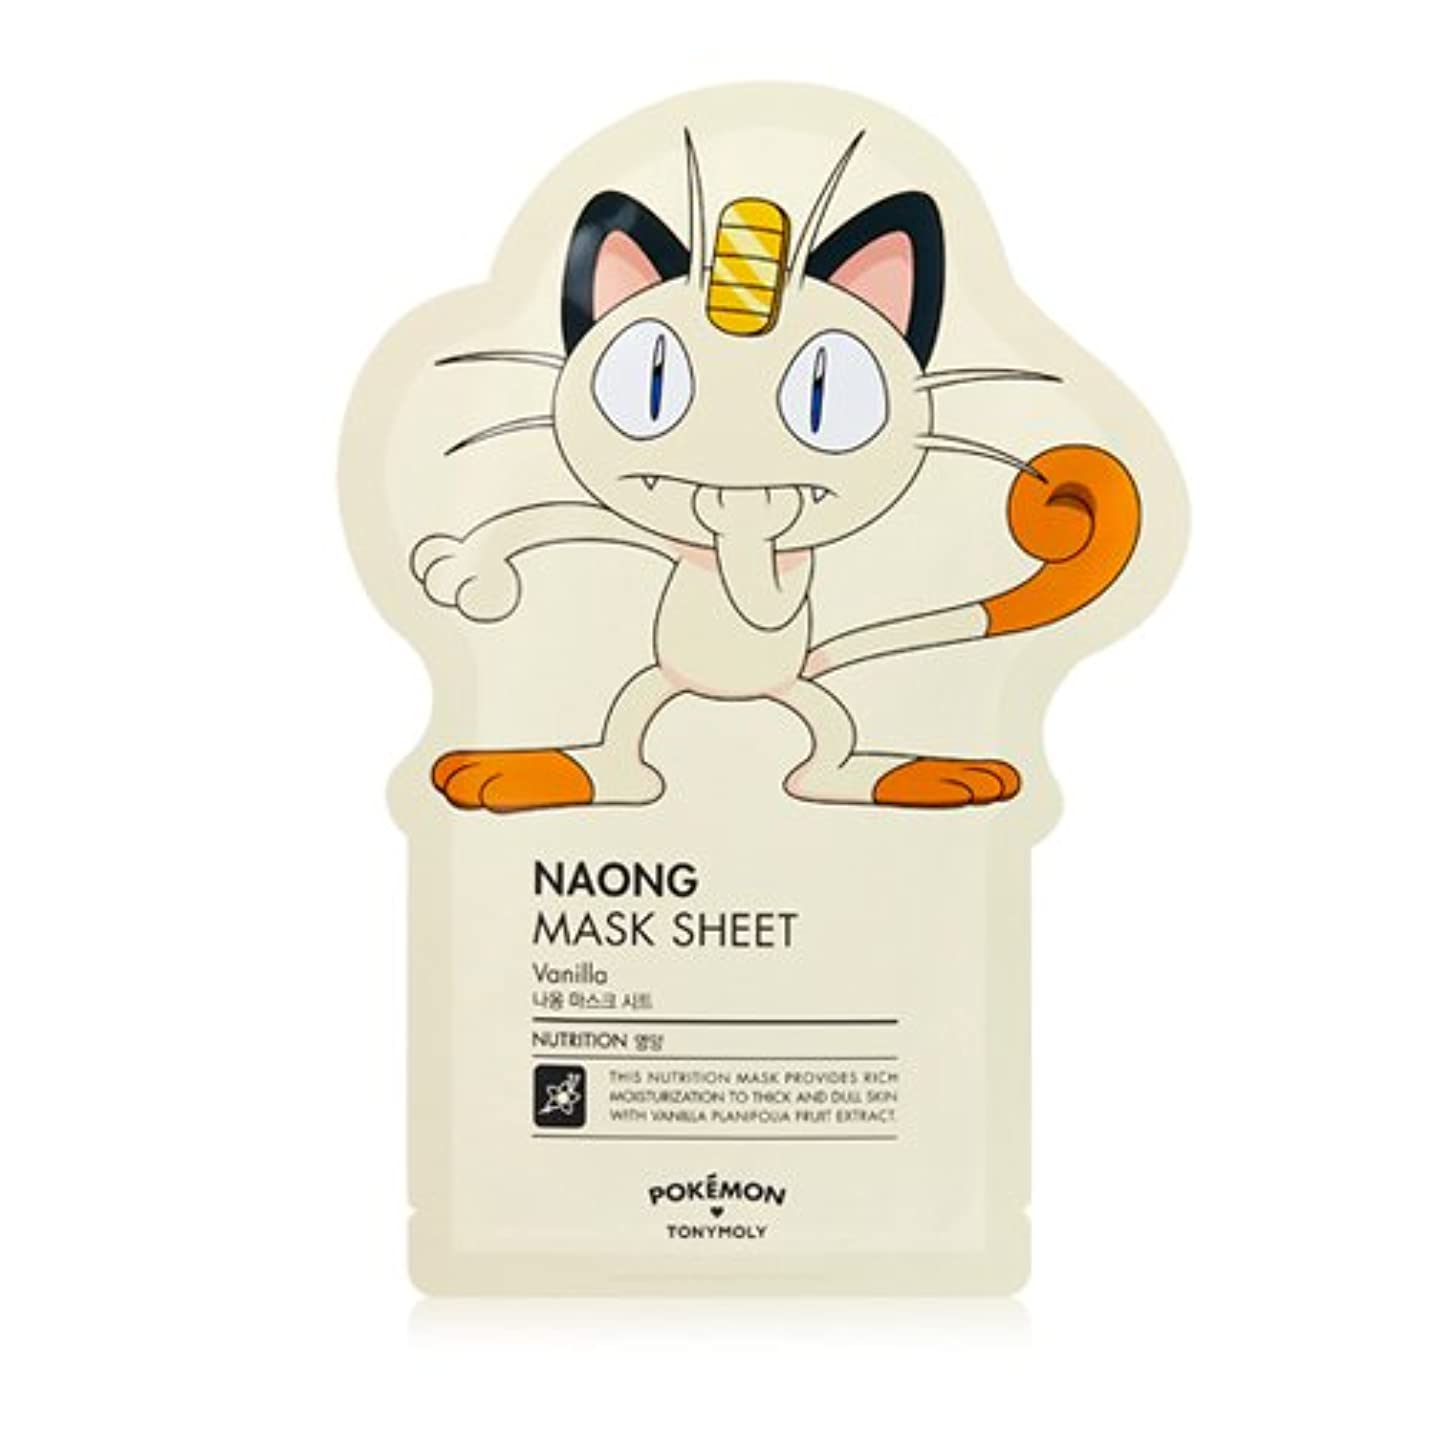 抜け目がない後継コーチ(3 Pack) TONYMOLY x Pokemon Meowth/Naong Mask Sheet (並行輸入品)